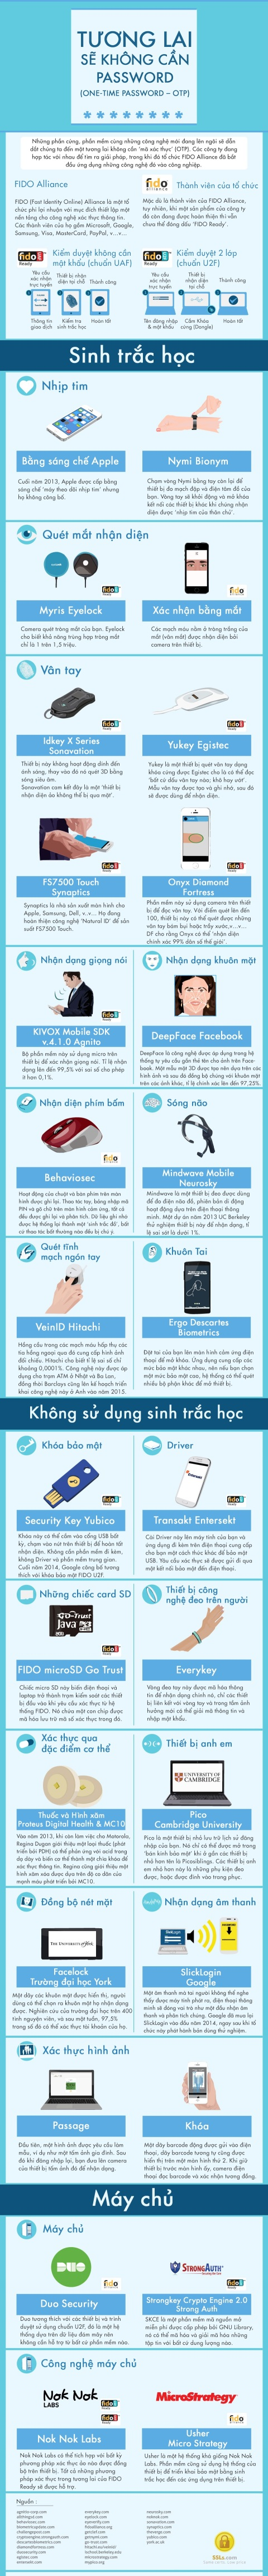 2998125_Infographic_Tuong_lai_se_khong_can_password